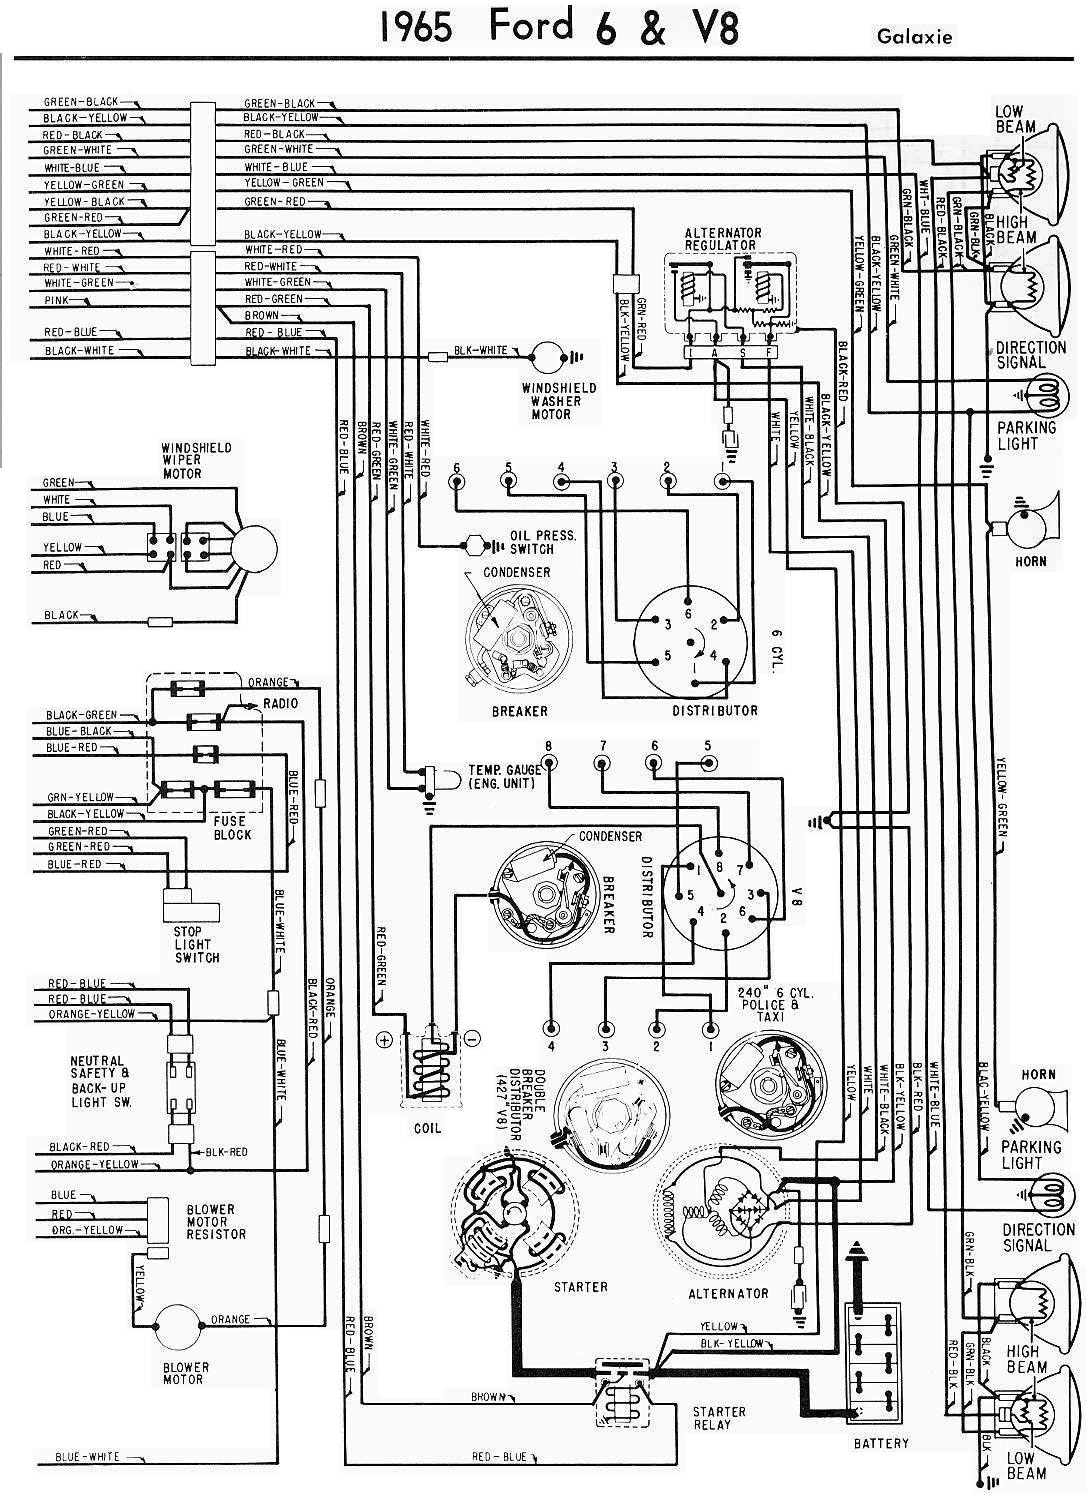 65 chevy 2 wiring diagram 1965 ford fairlane wiring diagram images 1965 ford galaxie plete electrical wiring diagram part 2 all